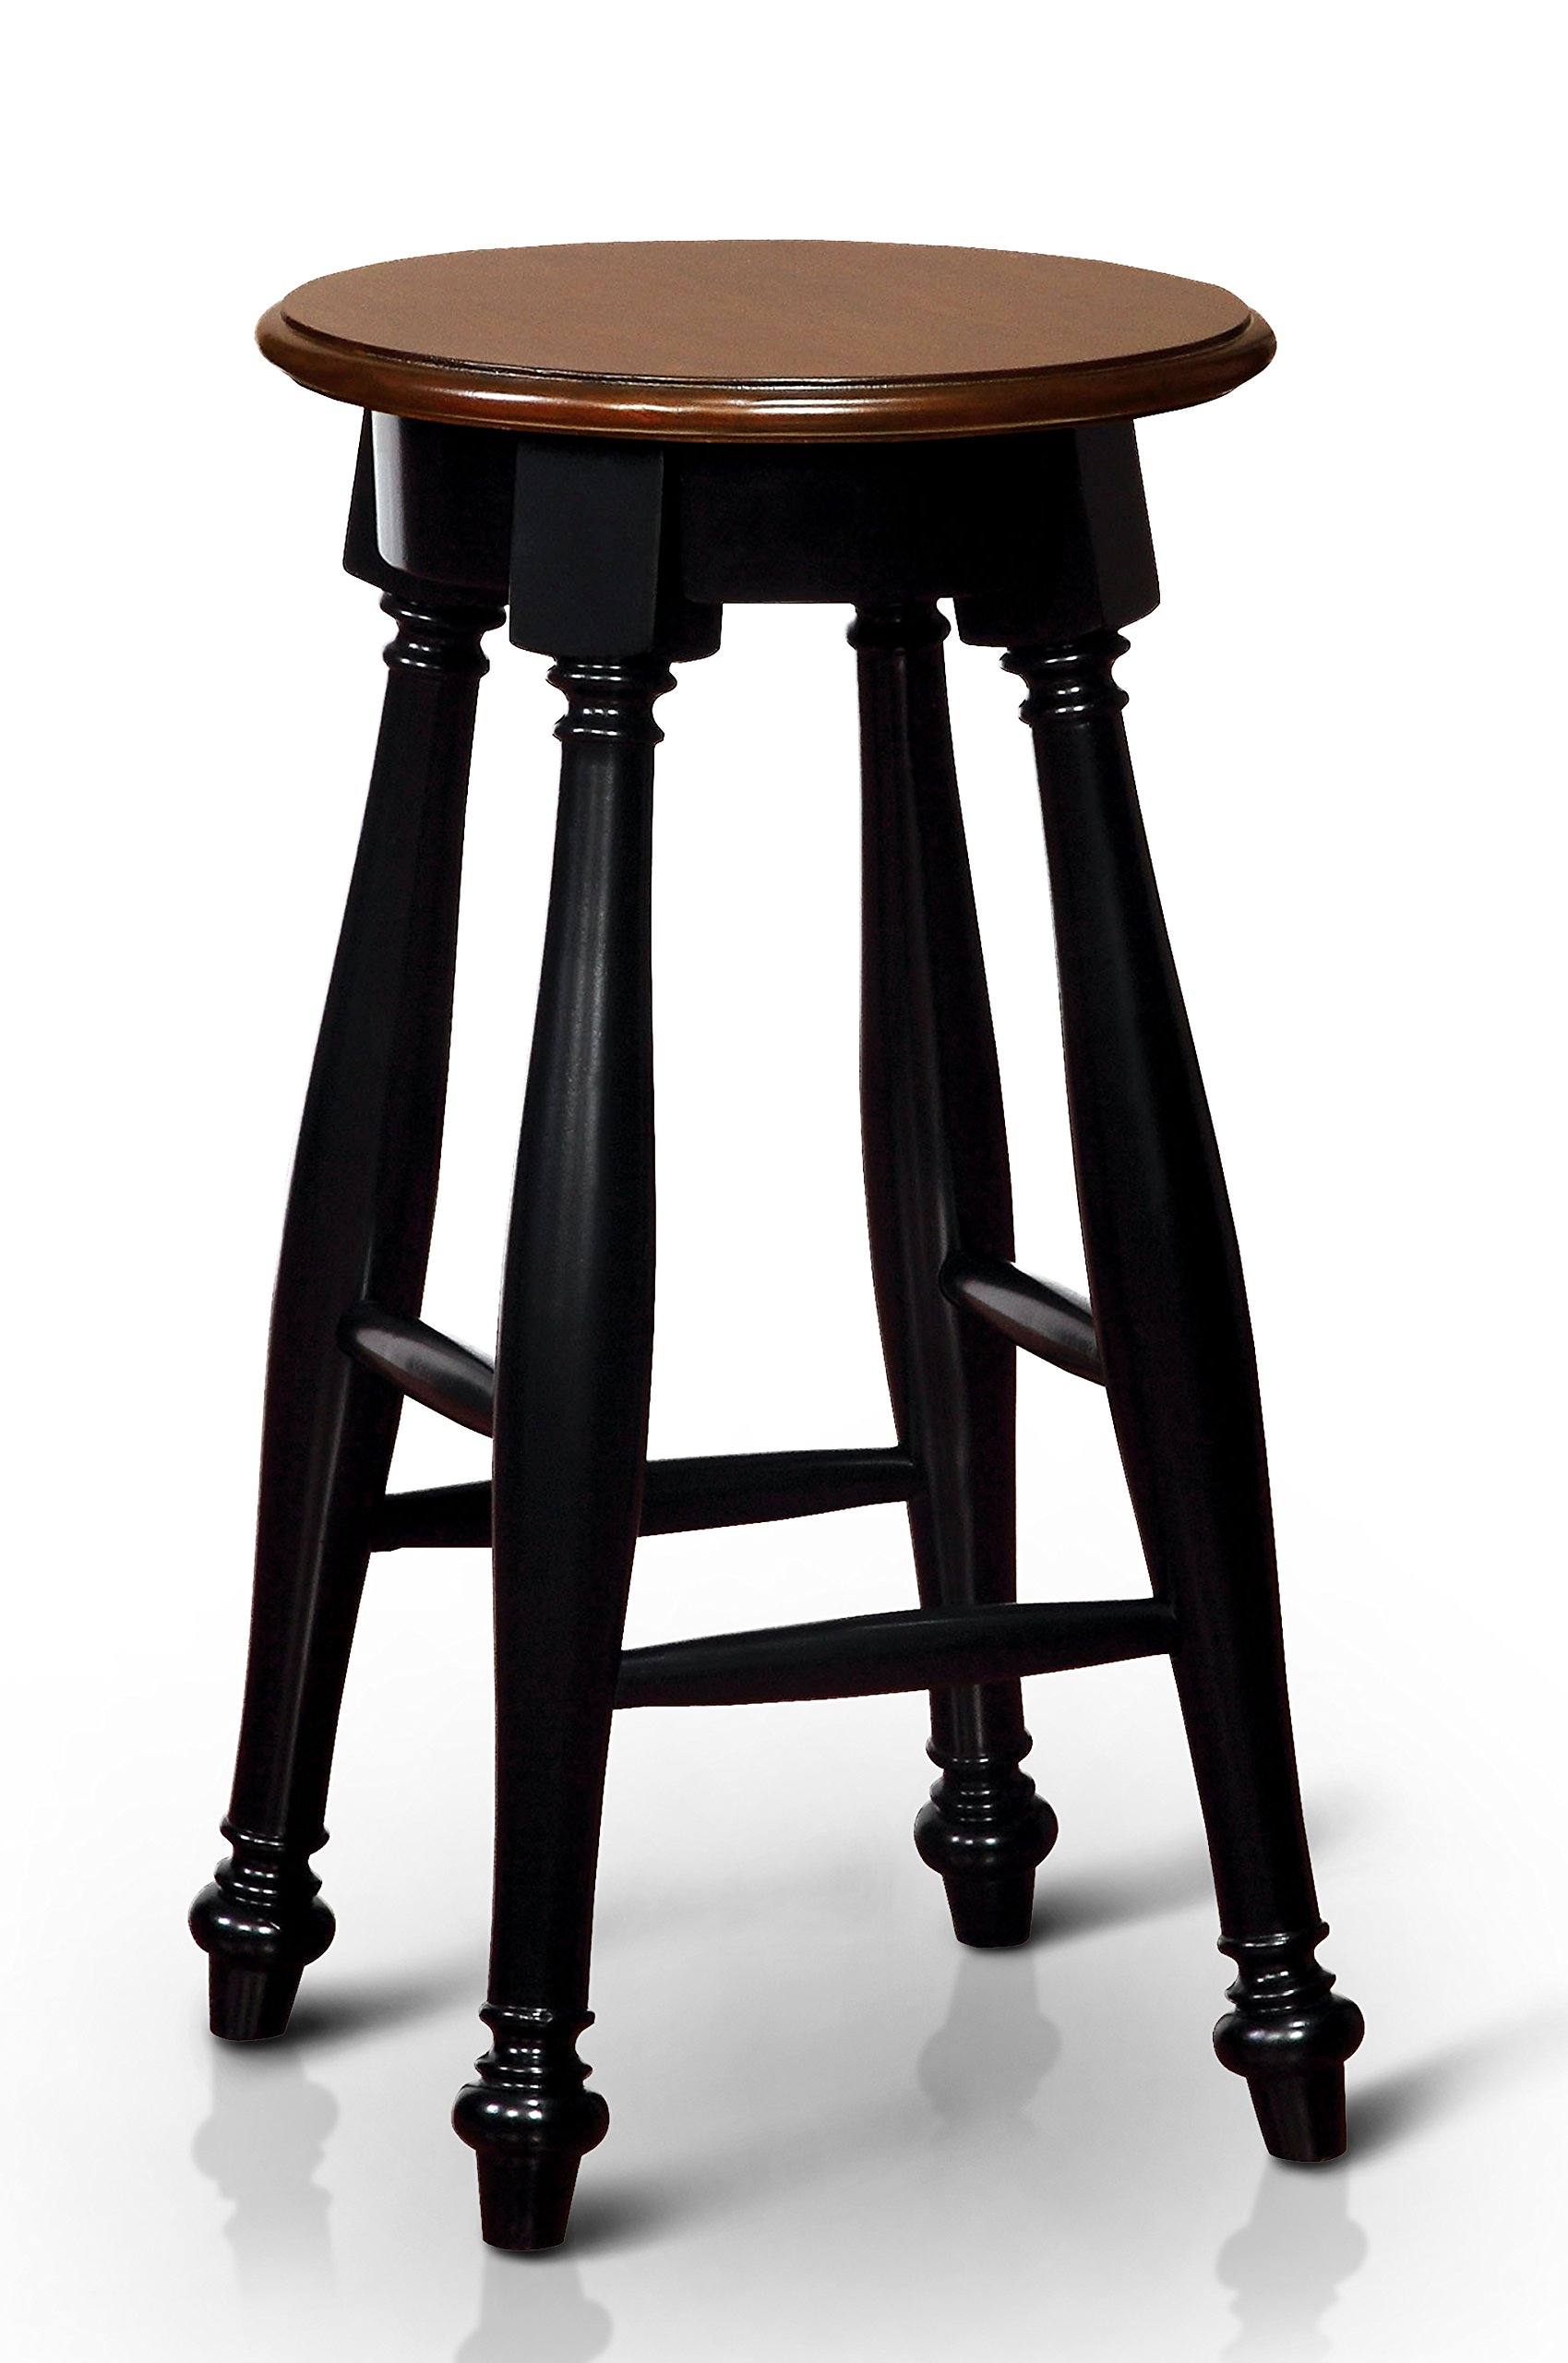 Furniture of America Zayne Round Bar Stool Country Style - Black/Cherry